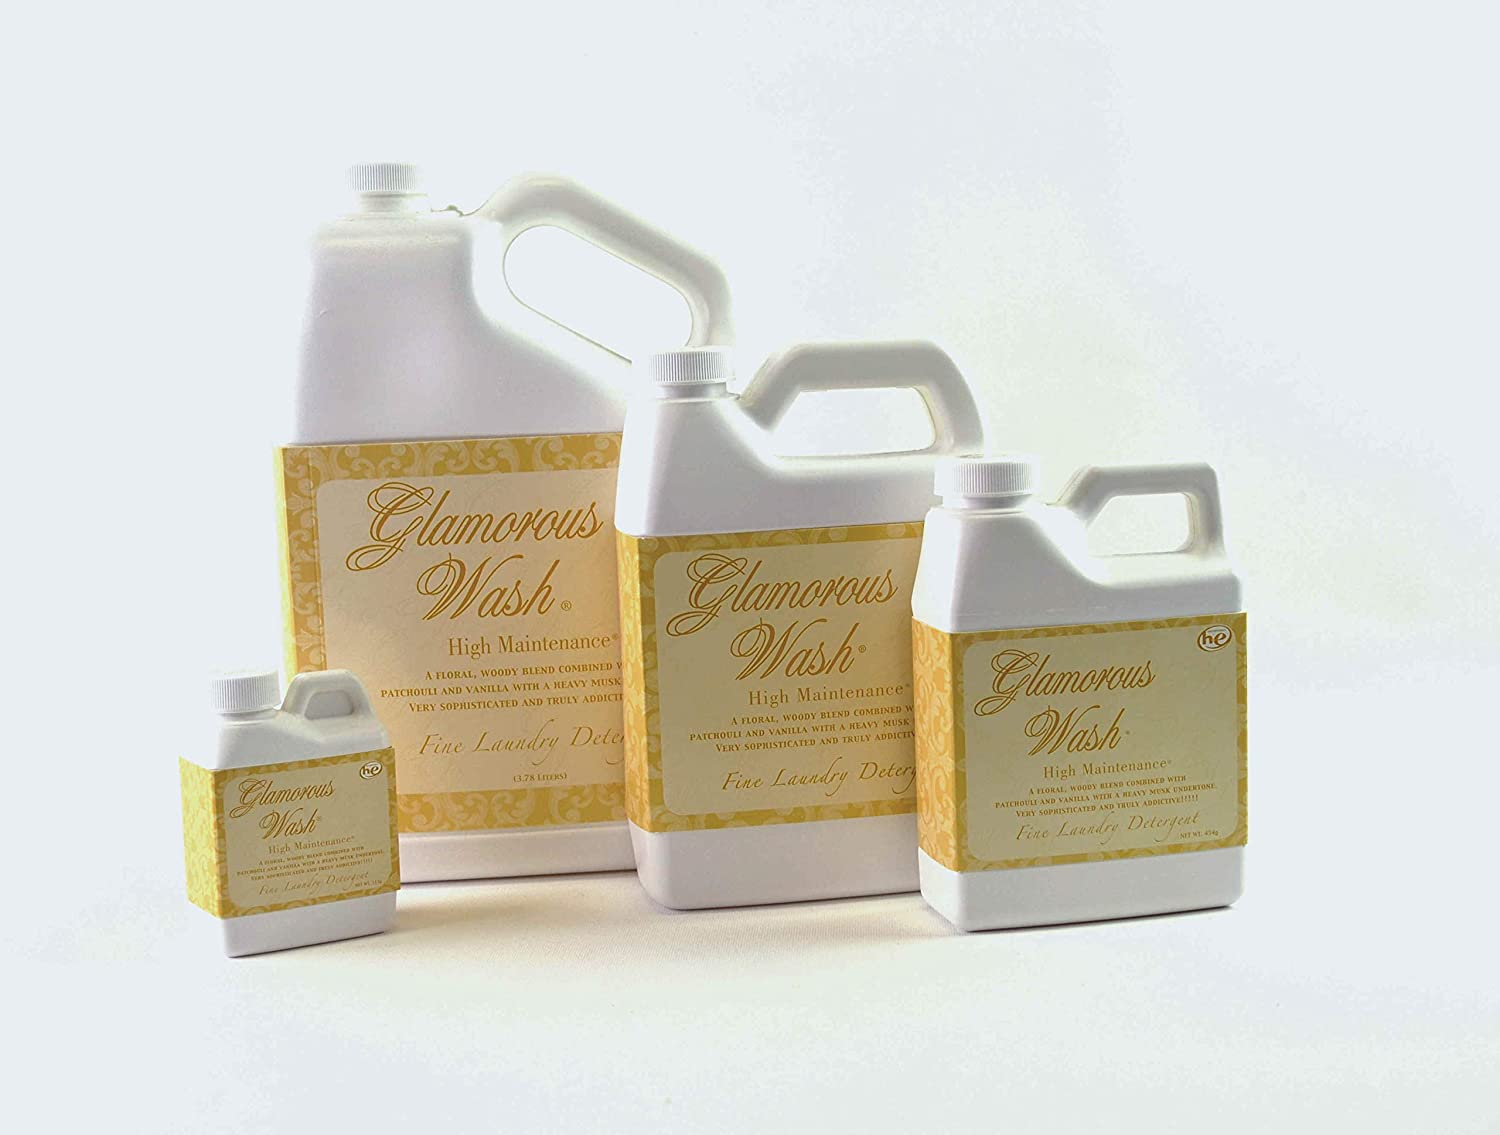 ENTITLED Glamorous Wash 64 oz Half Gallon Fine Laundry Detergent by Tyler Candles